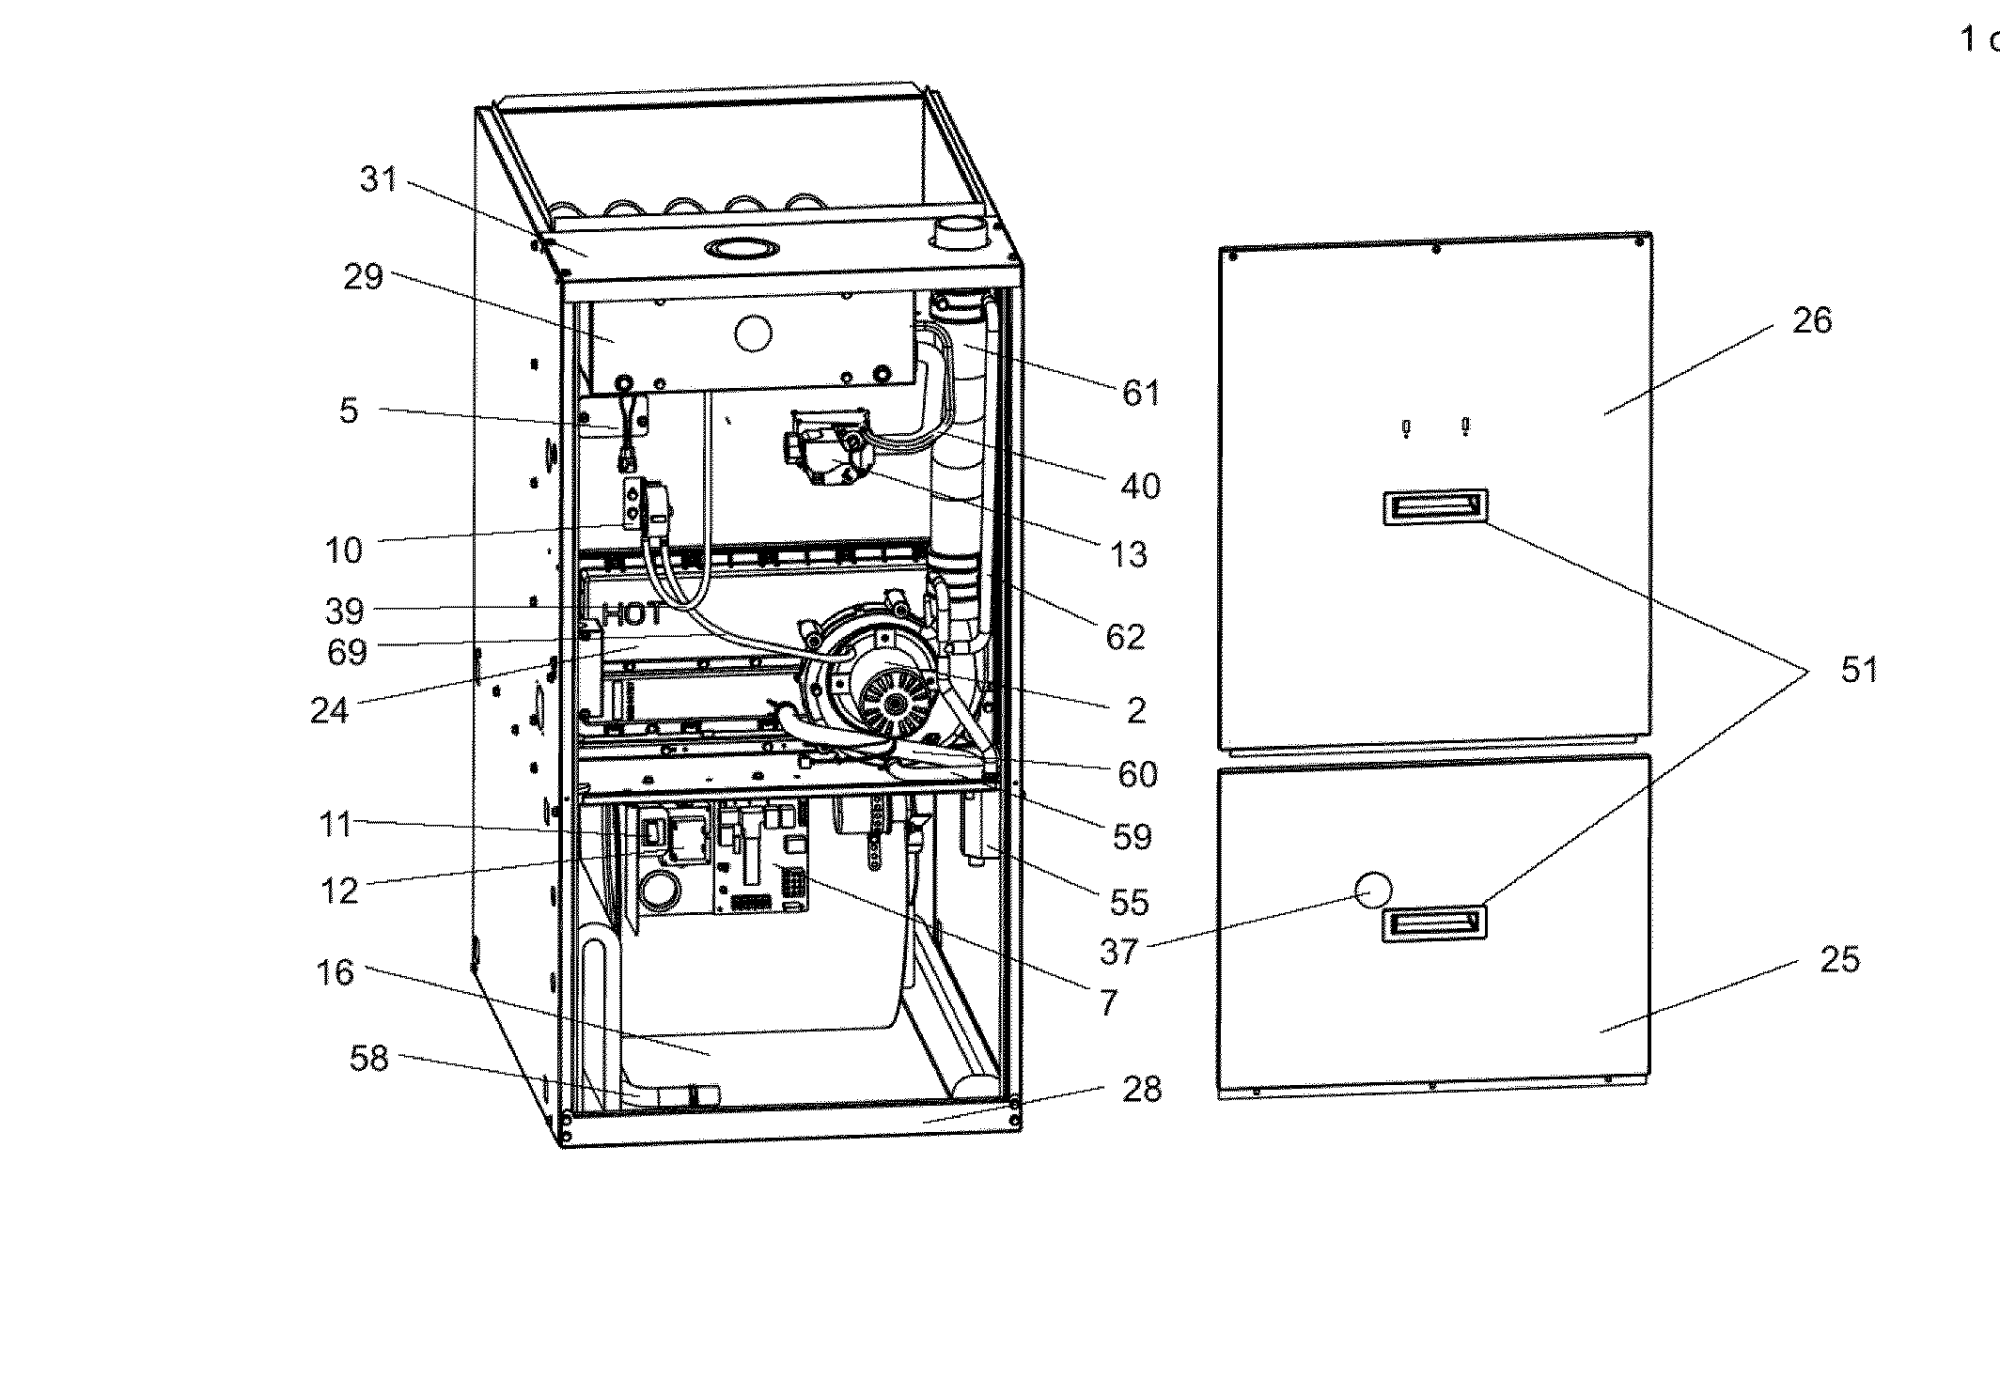 hight resolution of coleman furnace parts diagrams 30 wiring diagram images duct parts diagram diagram of air conditioner parts